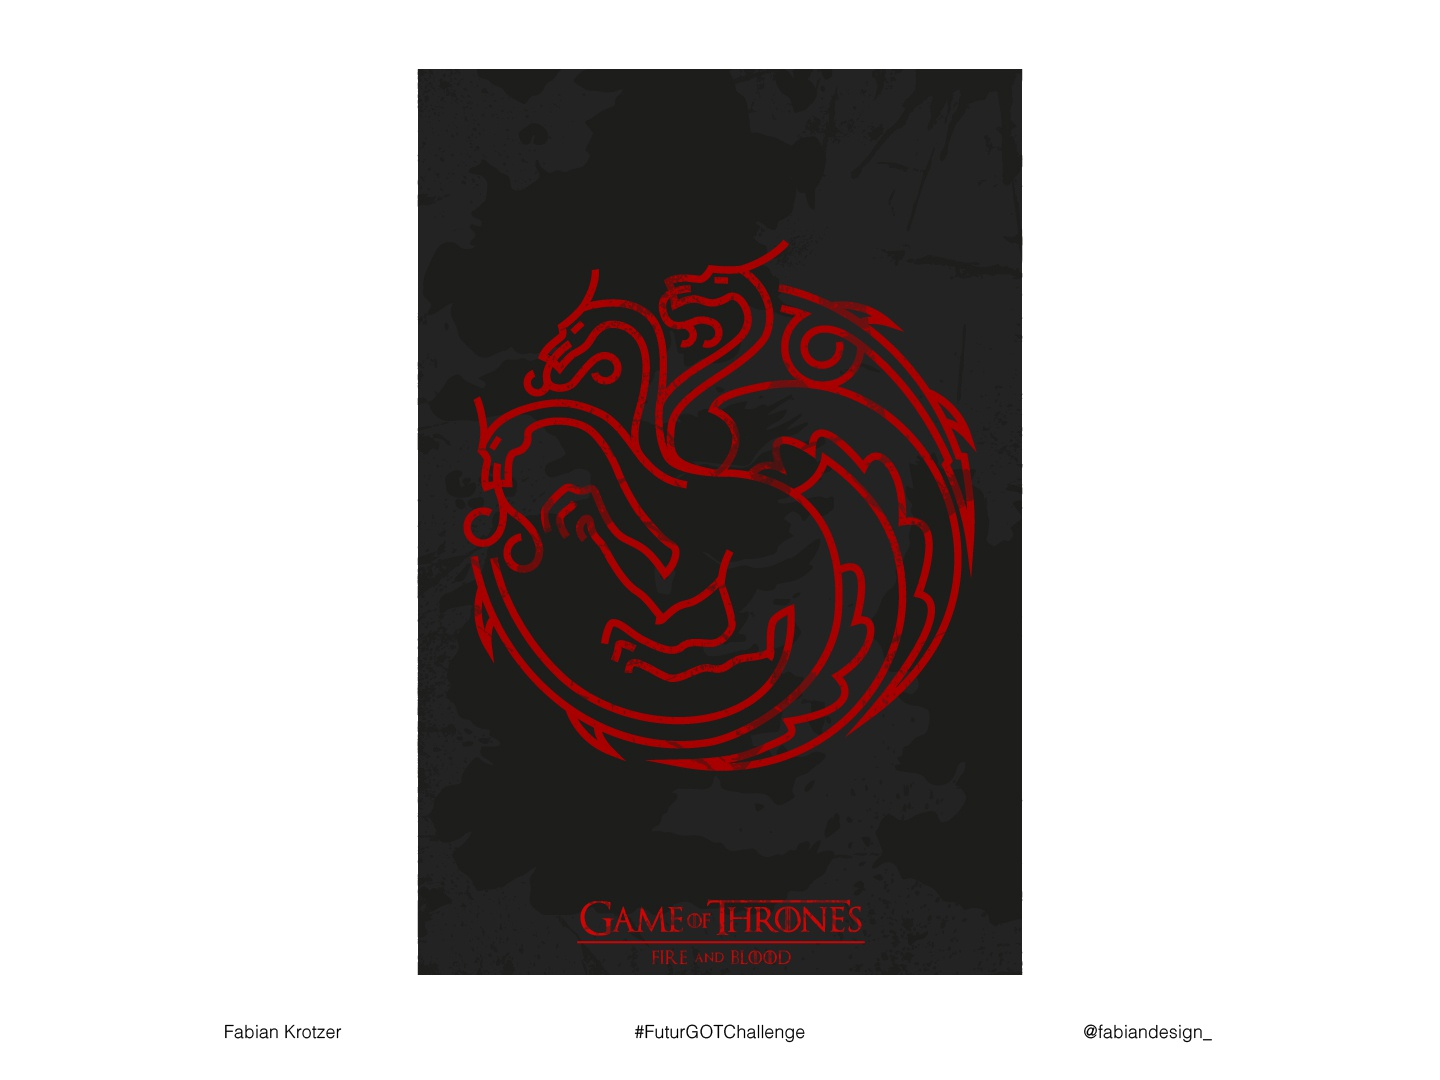 Game of Thrones Poster FABIAN K. typography got modern fanart fantasy graphic artist vector minimal illustration futur vote challenge graphic  design creative creativity designer design poster design game of thrones poster